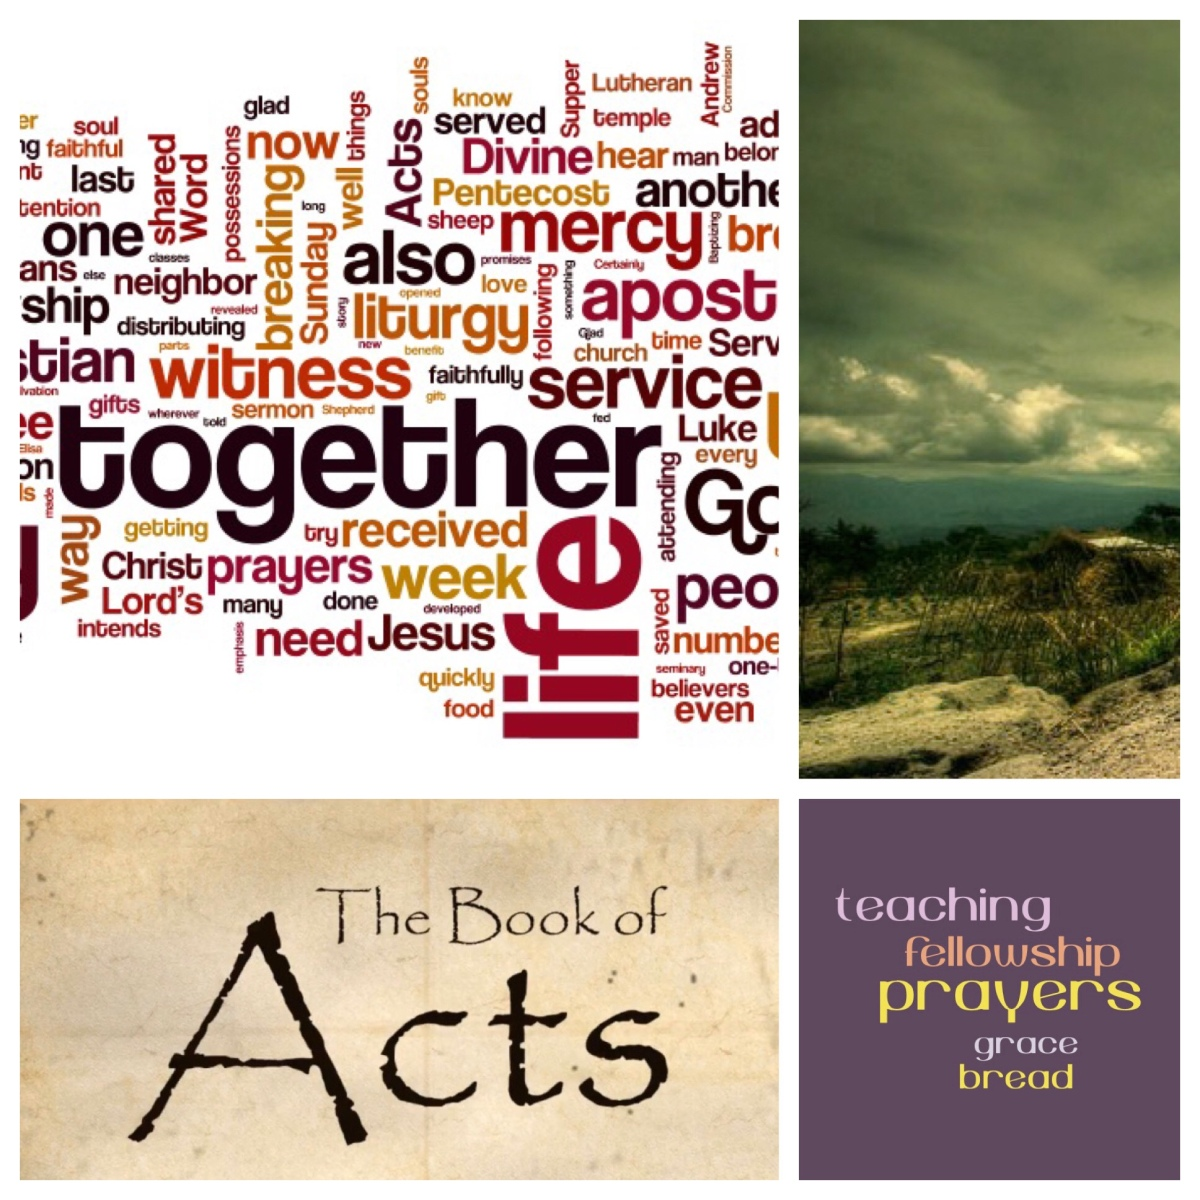 Teaching, fellowship, bread and prayers: the marks of community (Acts 2)